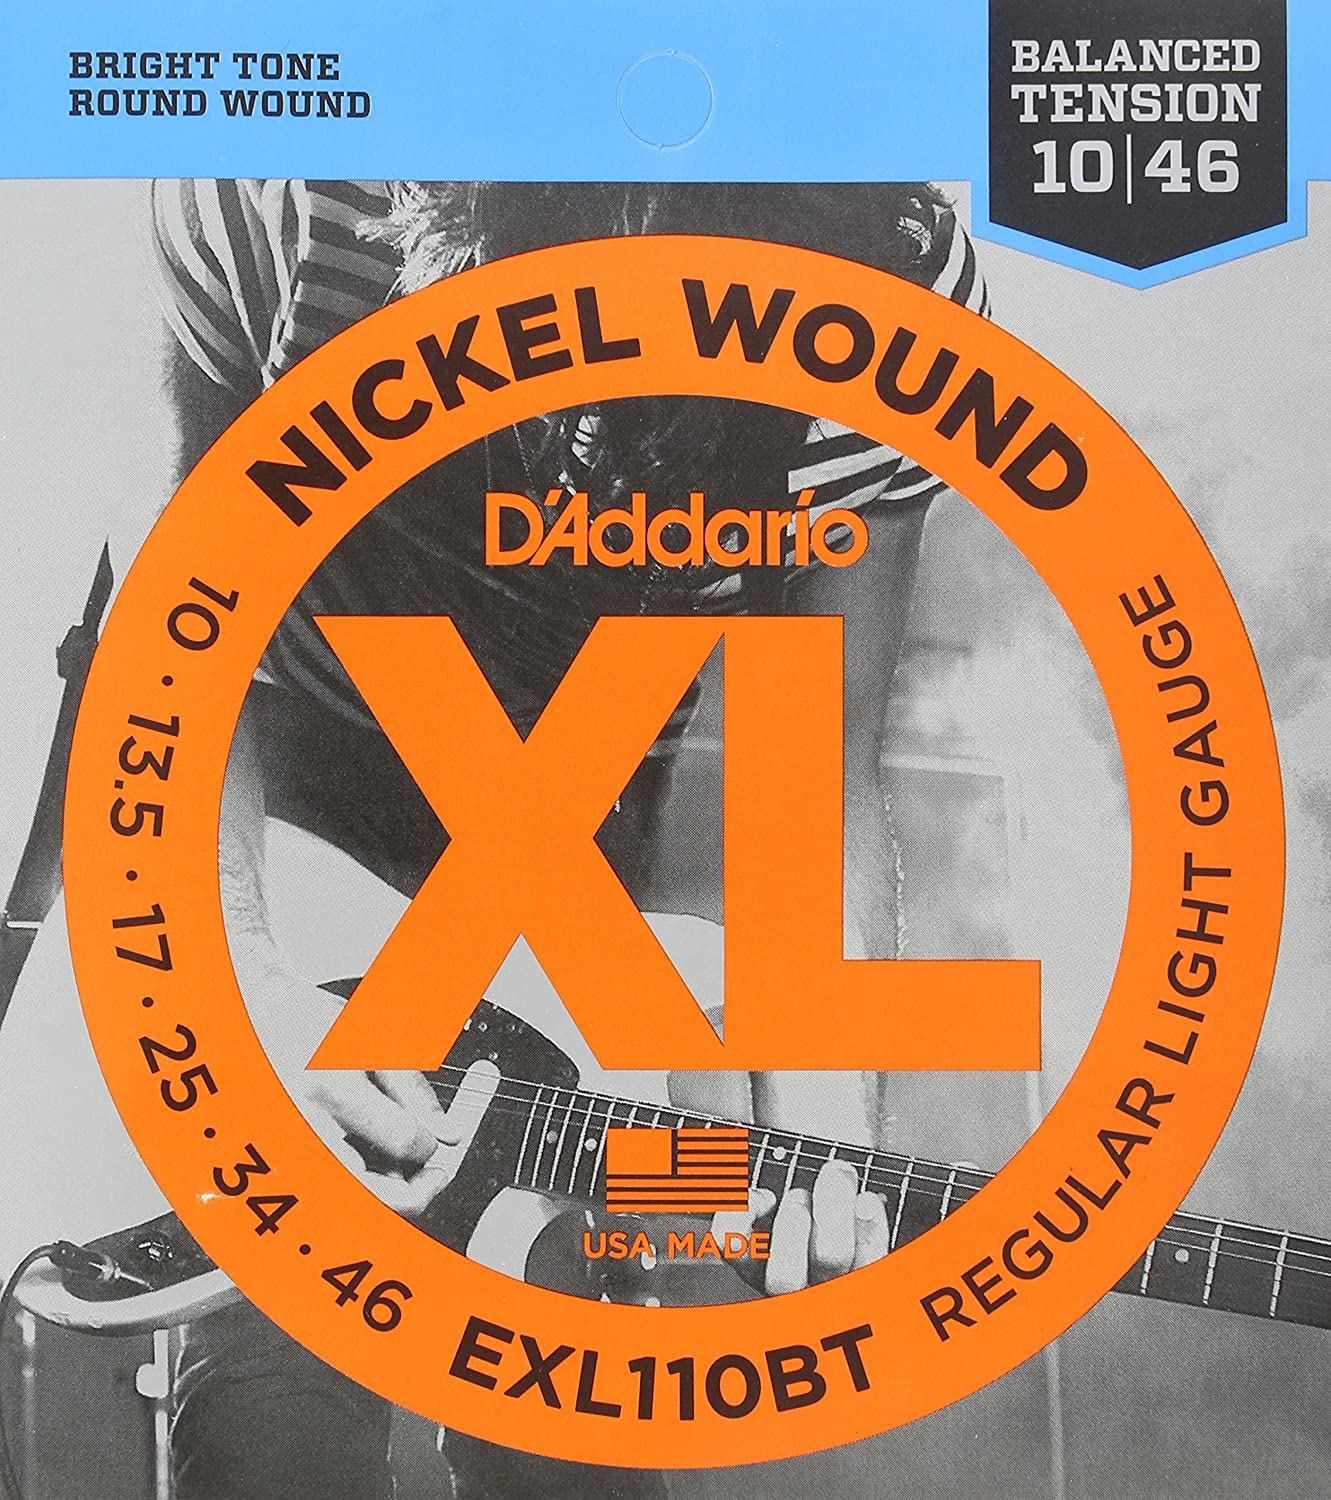 D'Addario EXL110BT Nickel Wound Electric Guitar Strings, Balanced Tension Regular Light, 10-46 D' Addario